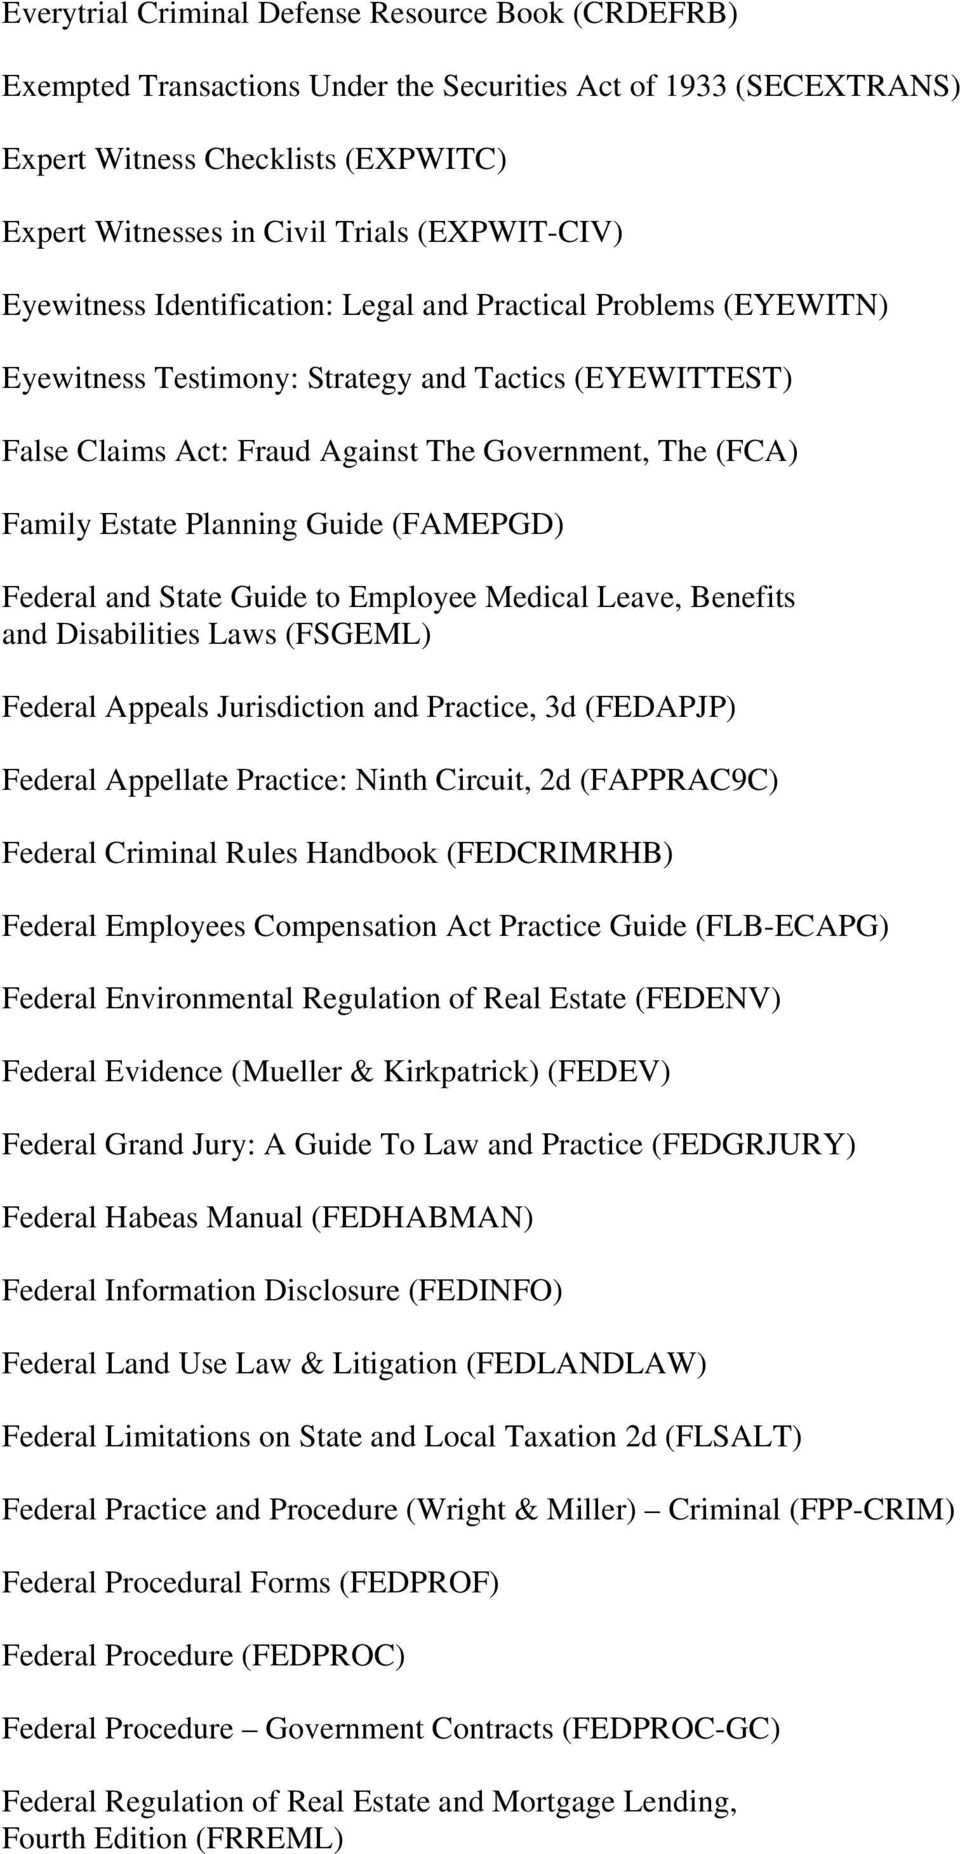 Estate Planning Guide (FAMEPGD) Federal and State Guide to Employee Medical Leave, Benefits and Disabilities Laws (FSGEML) Federal Appeals Jurisdiction and Practice, 3d (FEDAPJP) Federal Appellate